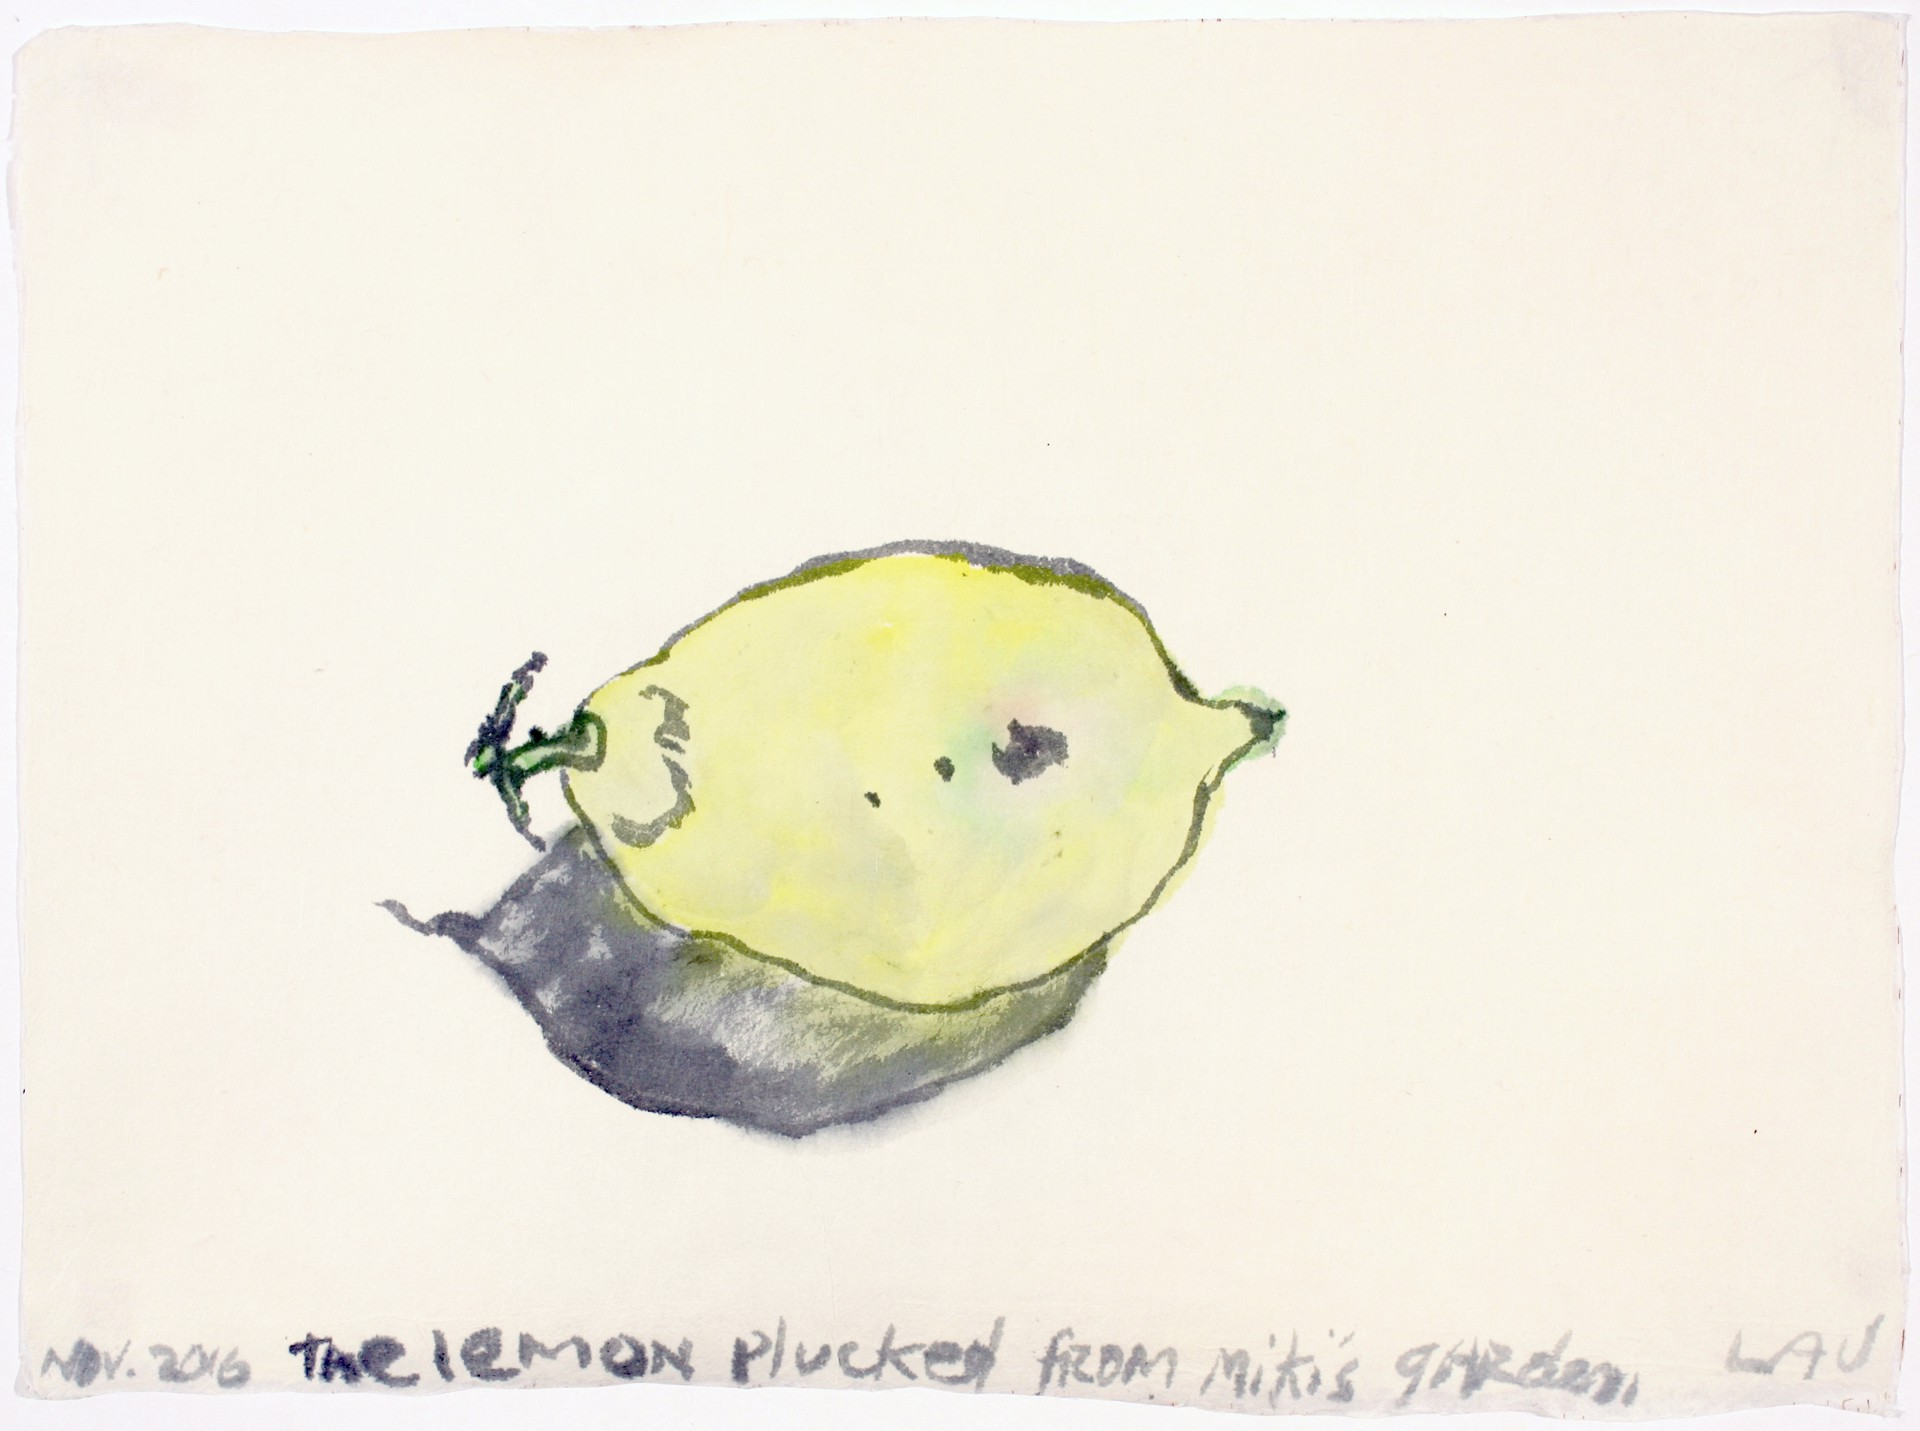 the lemon picked from miki's garden by Alan Lau